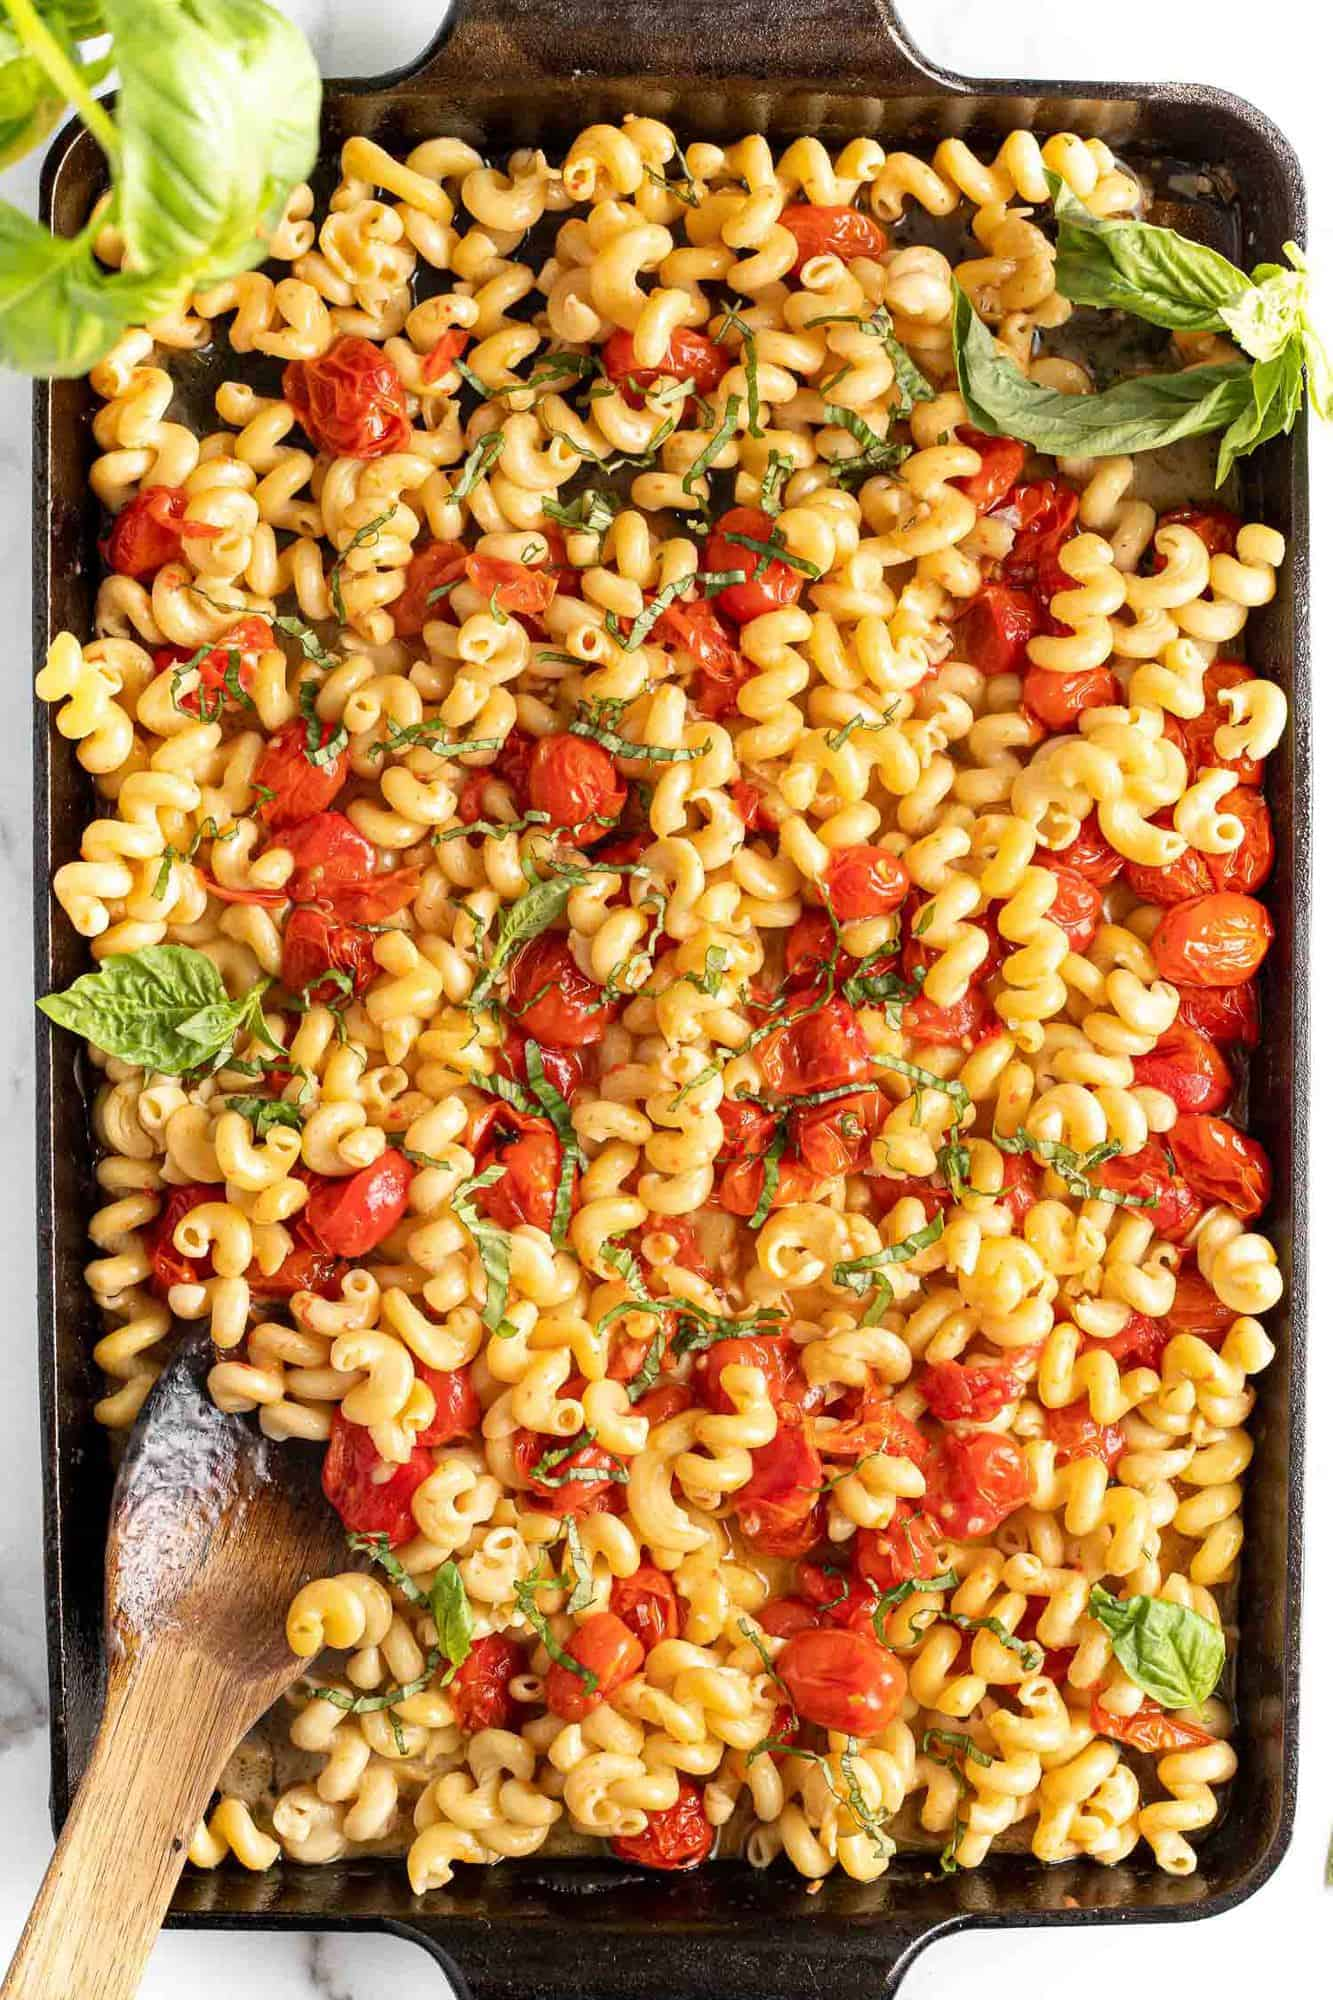 Pasta and tomatoes in a feta sauce, sprinkled with fresh basil.